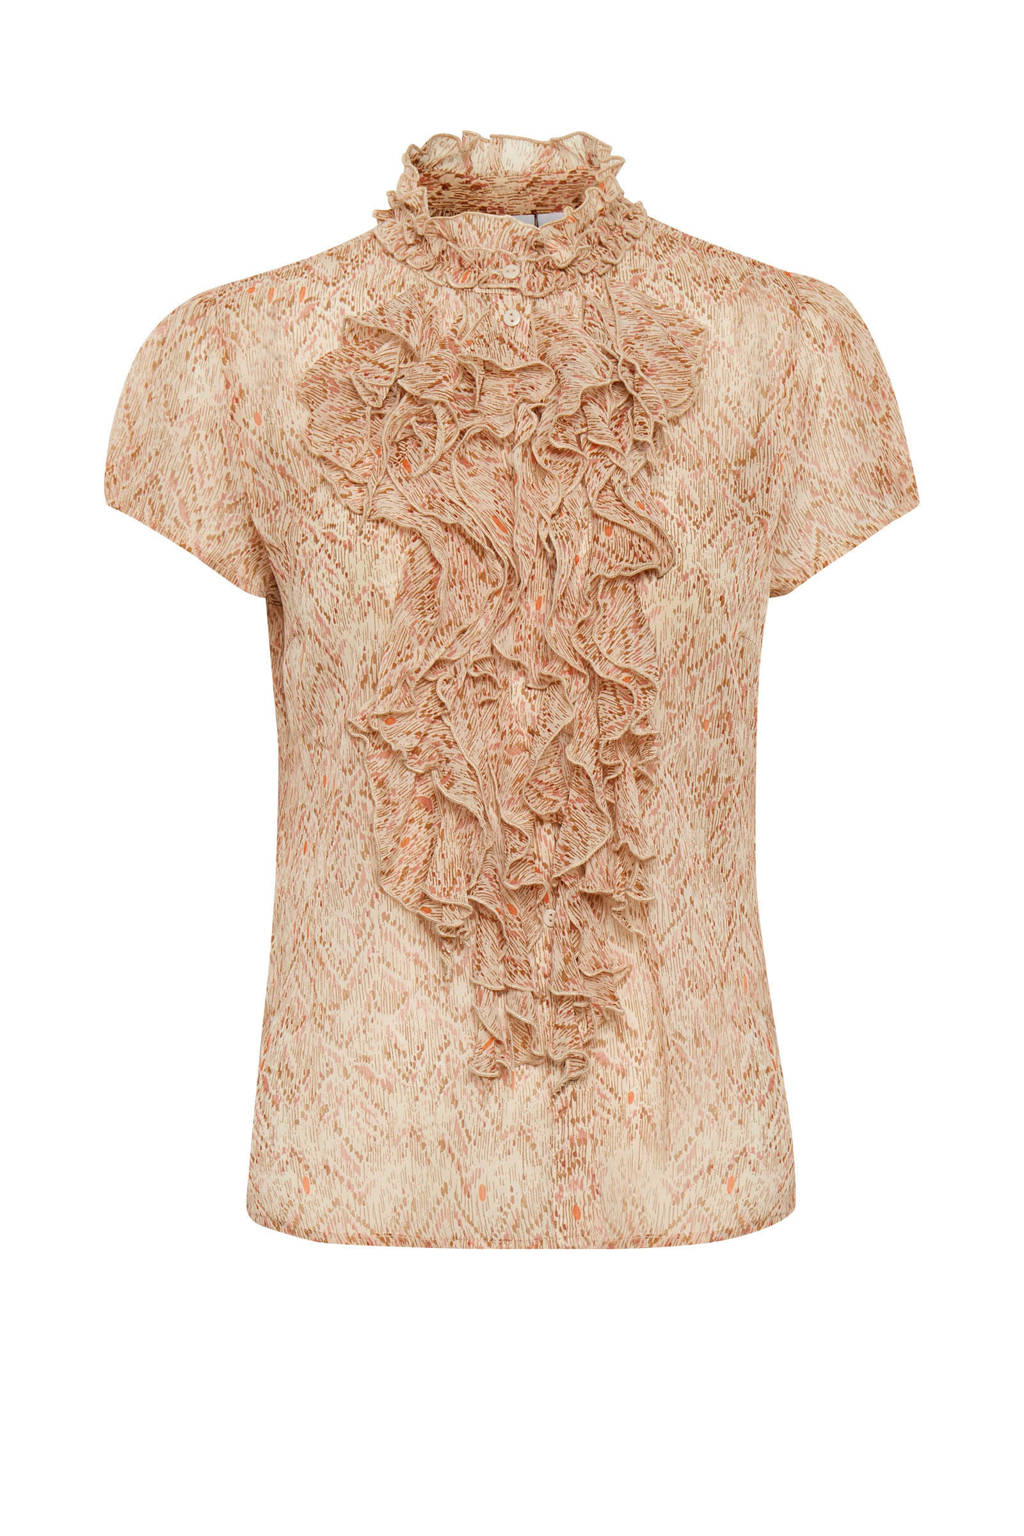 Saint Tropez top Xenya Lilly met all over print en ruches zand, Zand